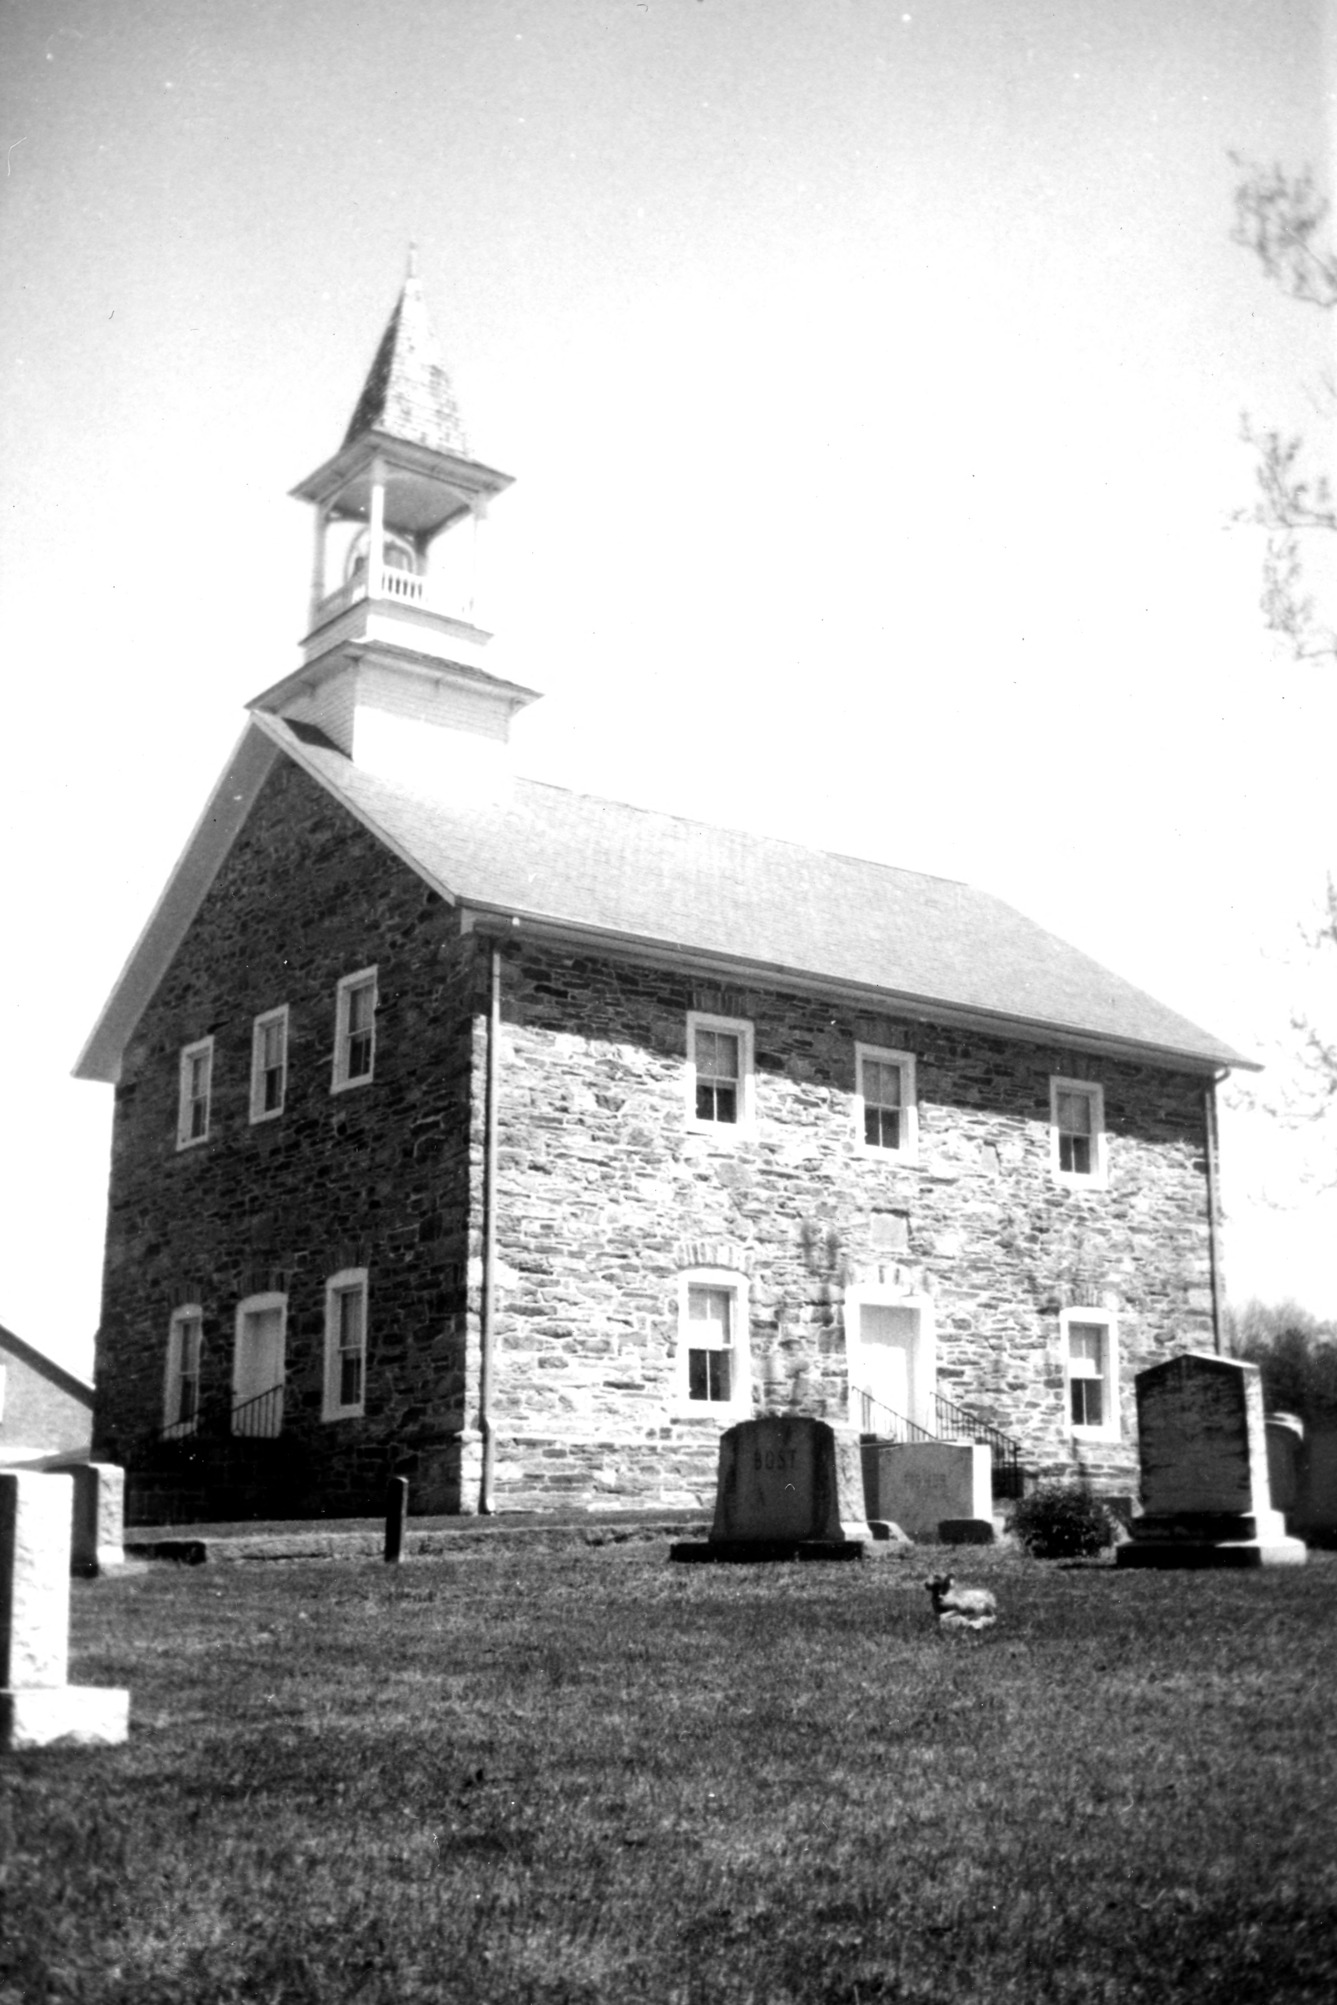 View, Grace Evangelical and Reformed (Lower Stone) Church, Rowan County, North Carolina